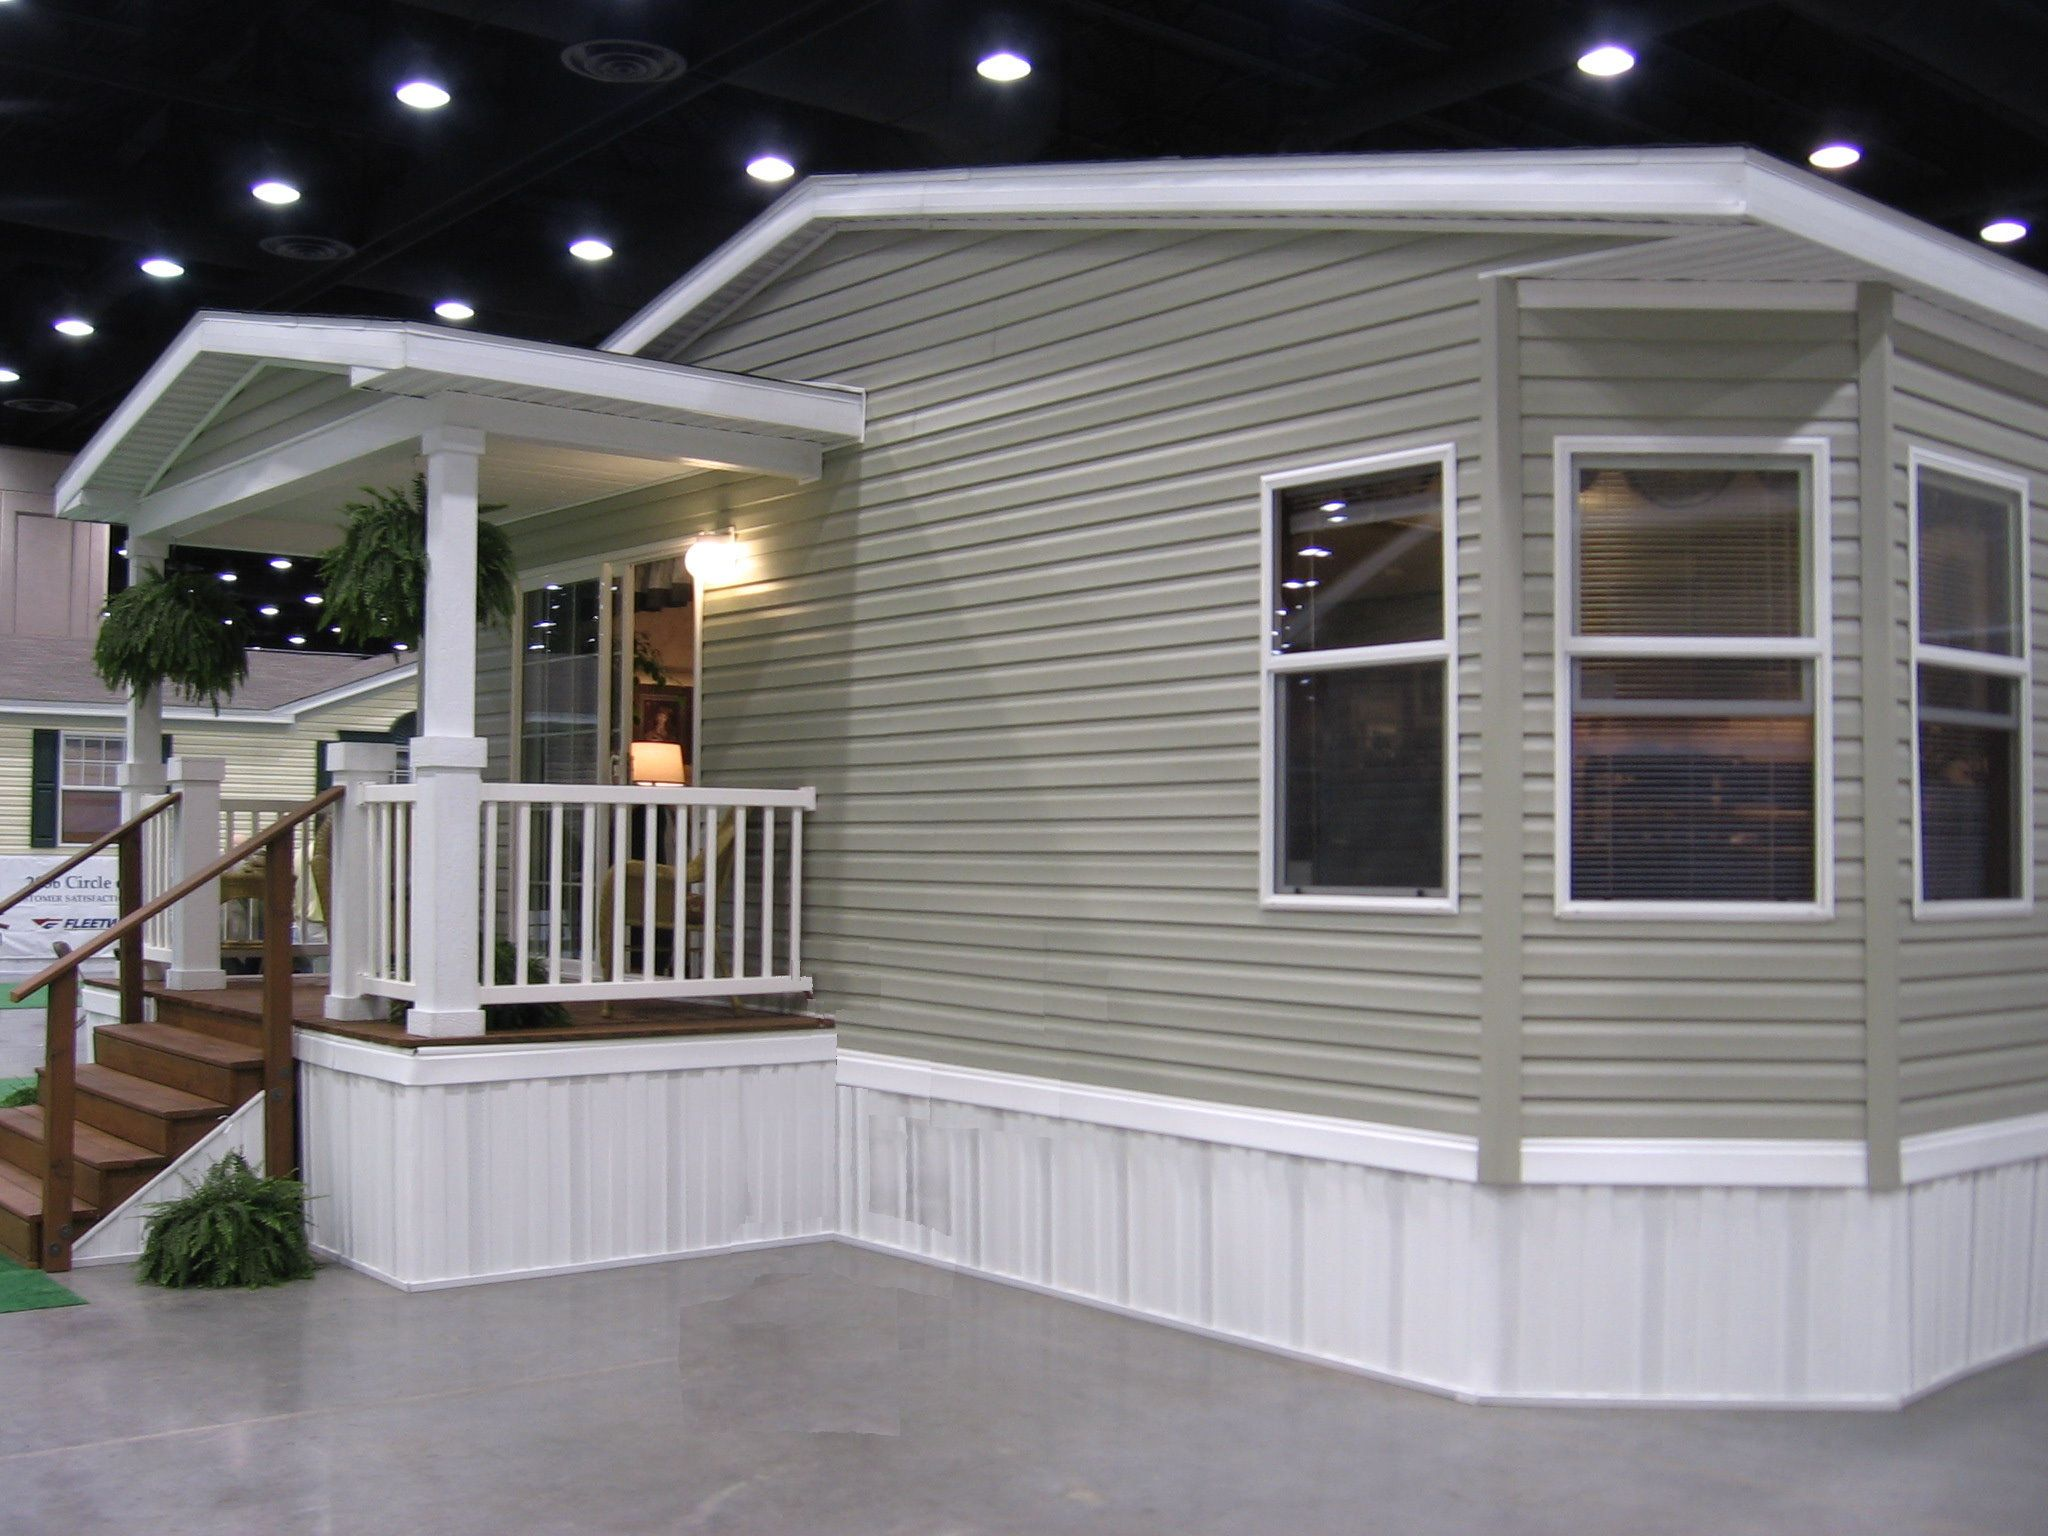 Mobile Home Deck Ideas | PORCH DESIGNS FOR MOBILE HOMES « Home ...